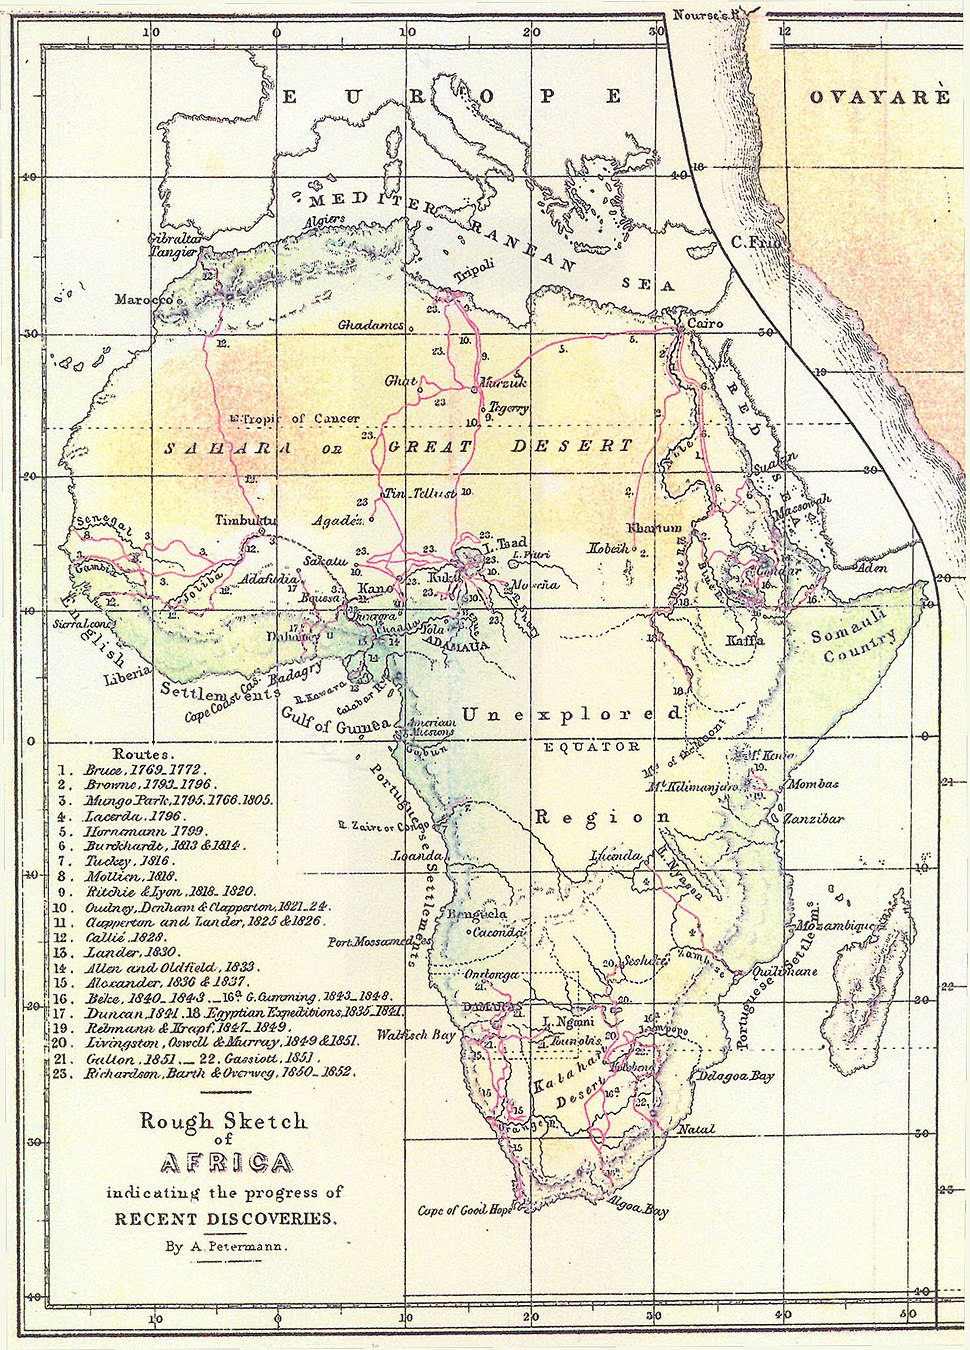 Routes of European explorers in Africa, to 1853